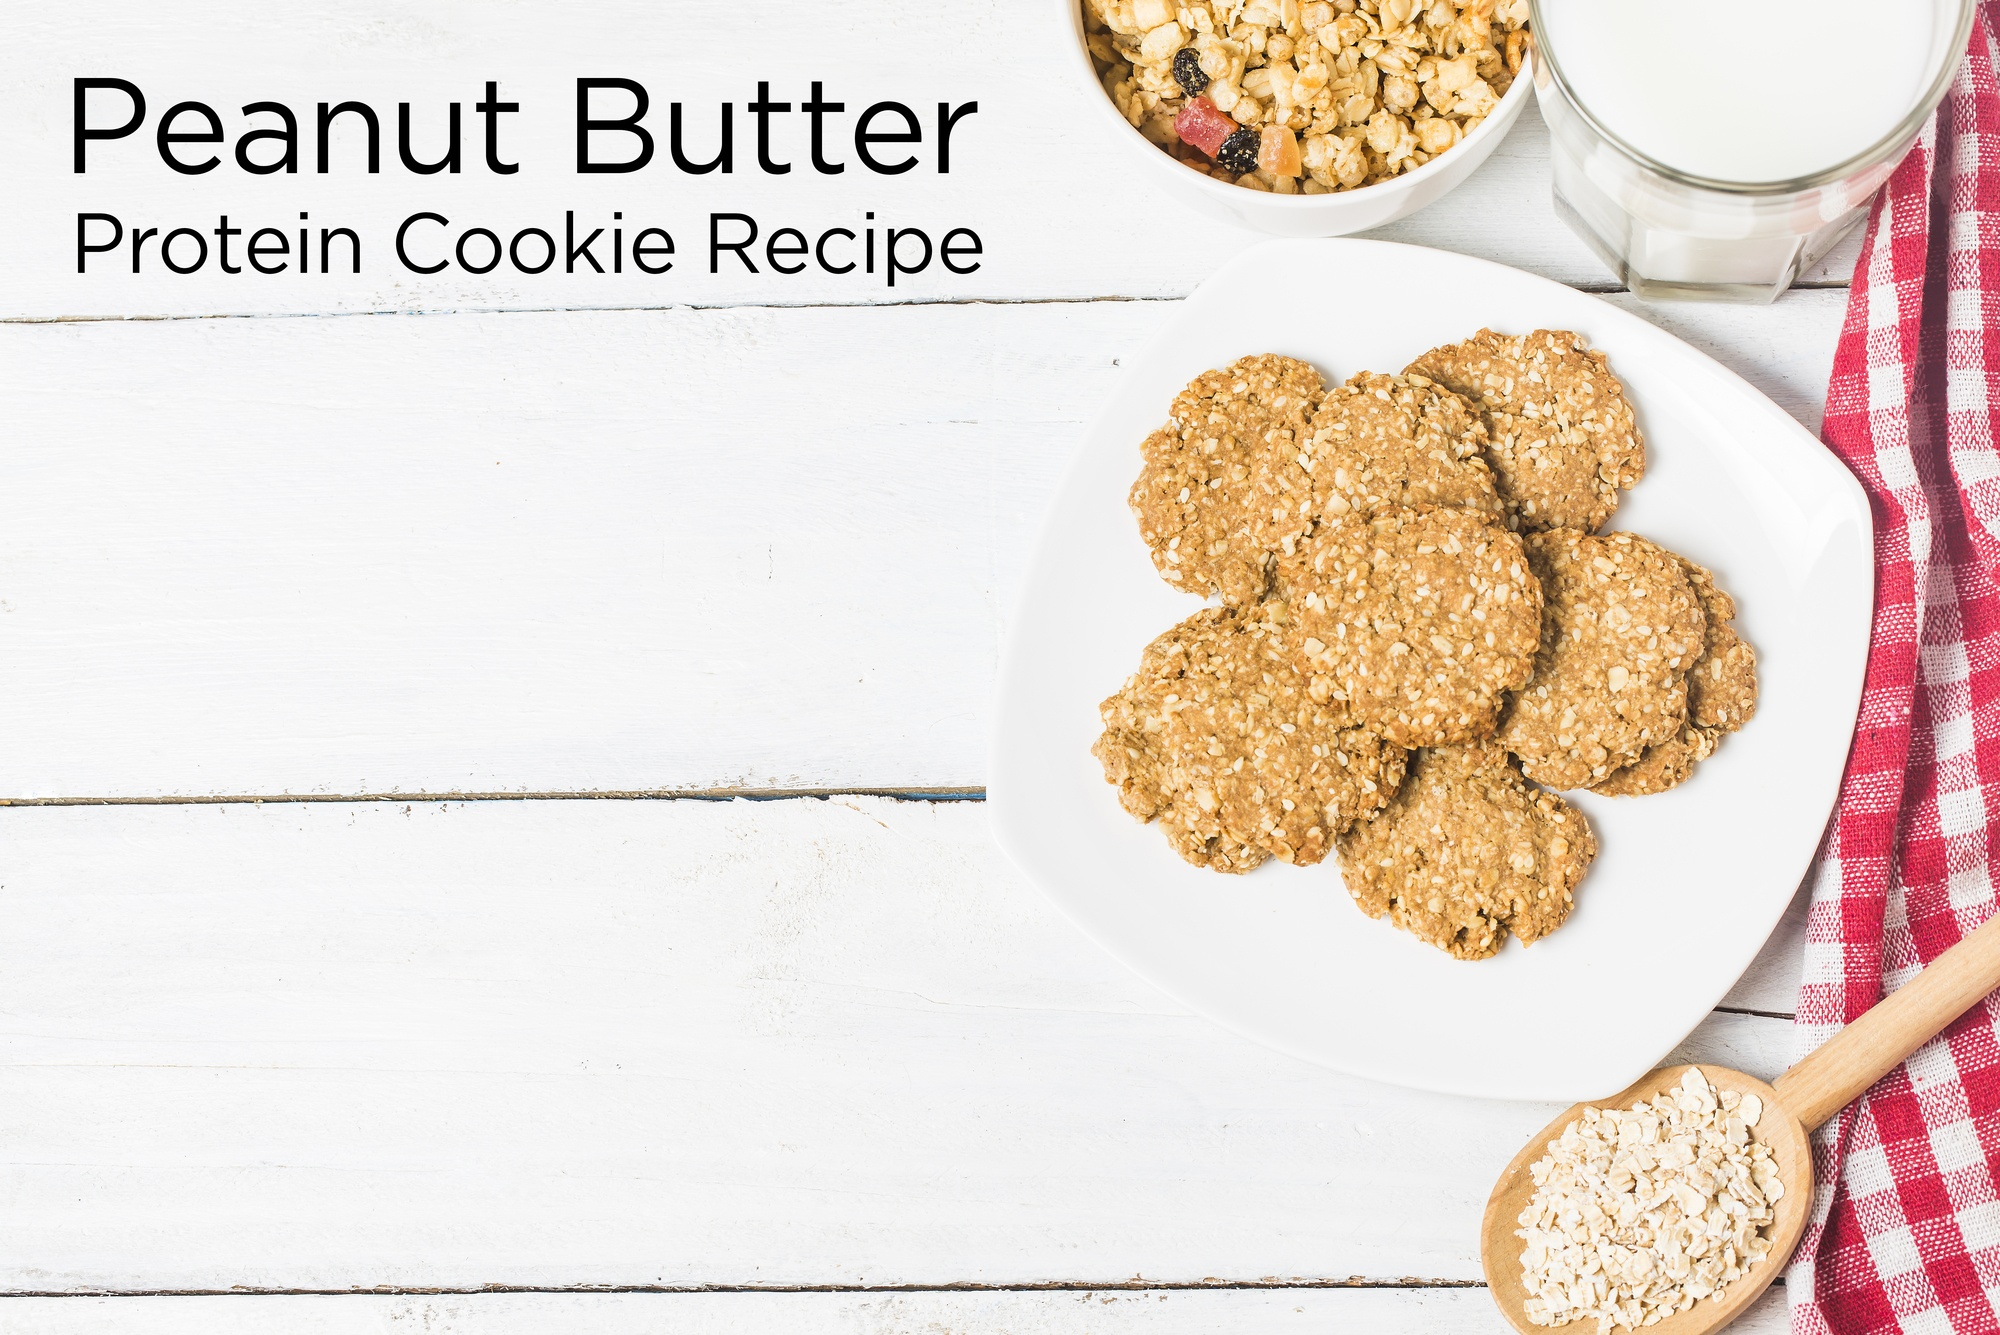 To celebrate National Peanut Butter Cookie Day, PI has the perfect recipe for you!